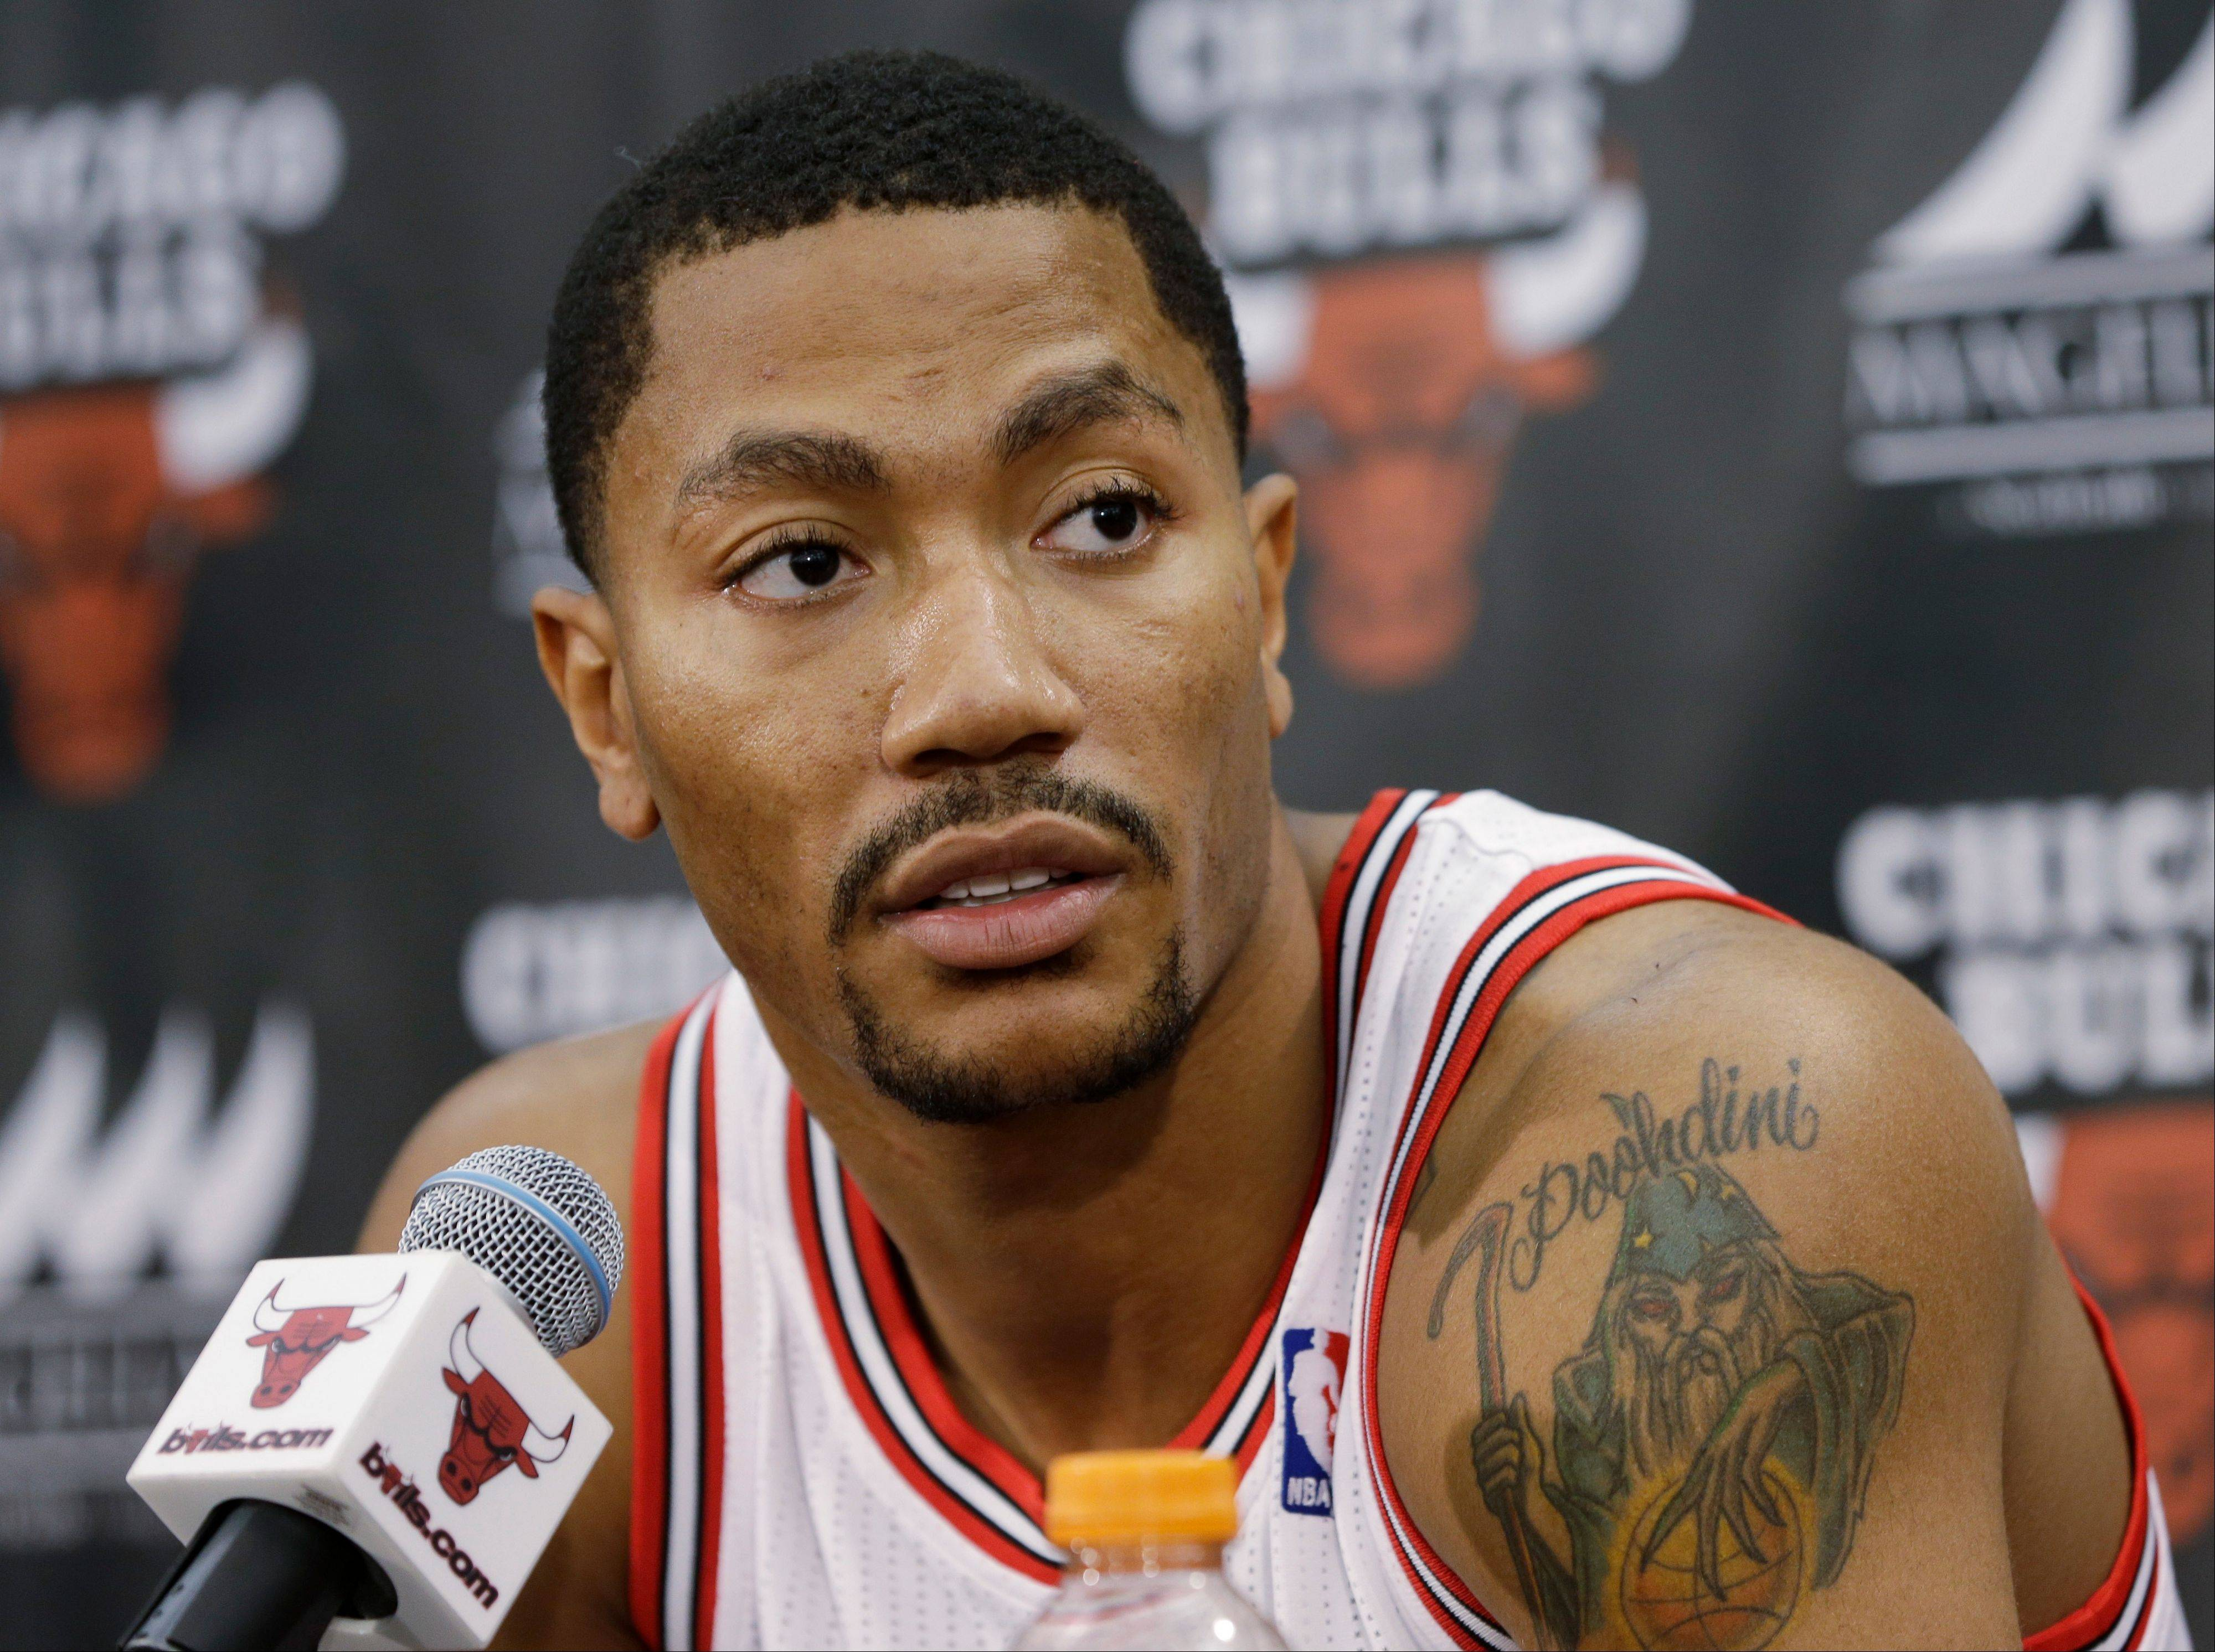 Bulls guard Derrick Rose, who missed last season after tearing an ACL in a playoff game in 2012, says he expects to perform at the same level as before the injury. He also said he has extended his shooting range and has more confidence in his game than ever before.